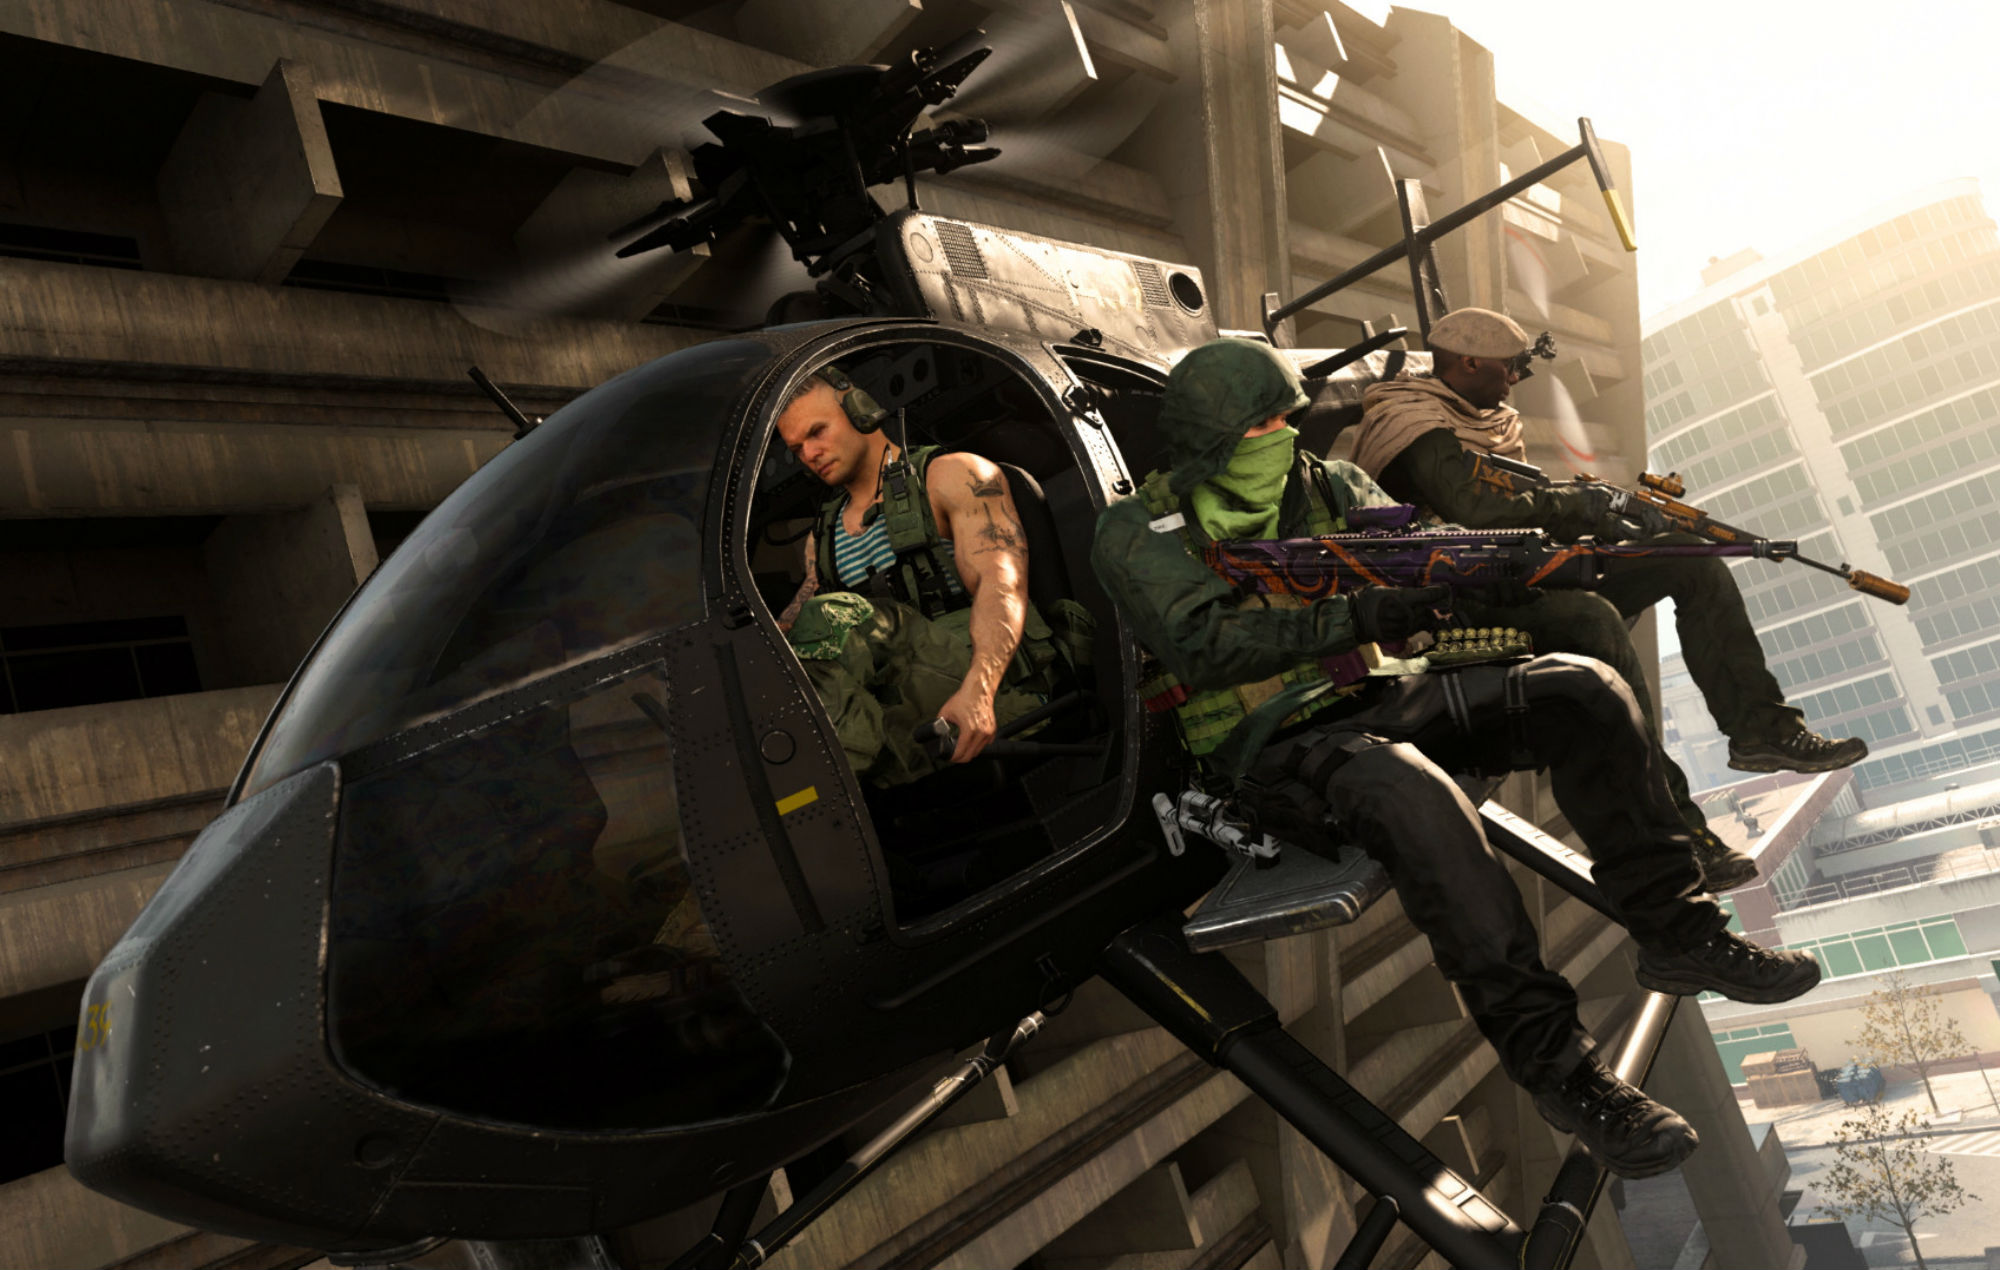 Call Of Duty: Warzone Heli from Raven Softward